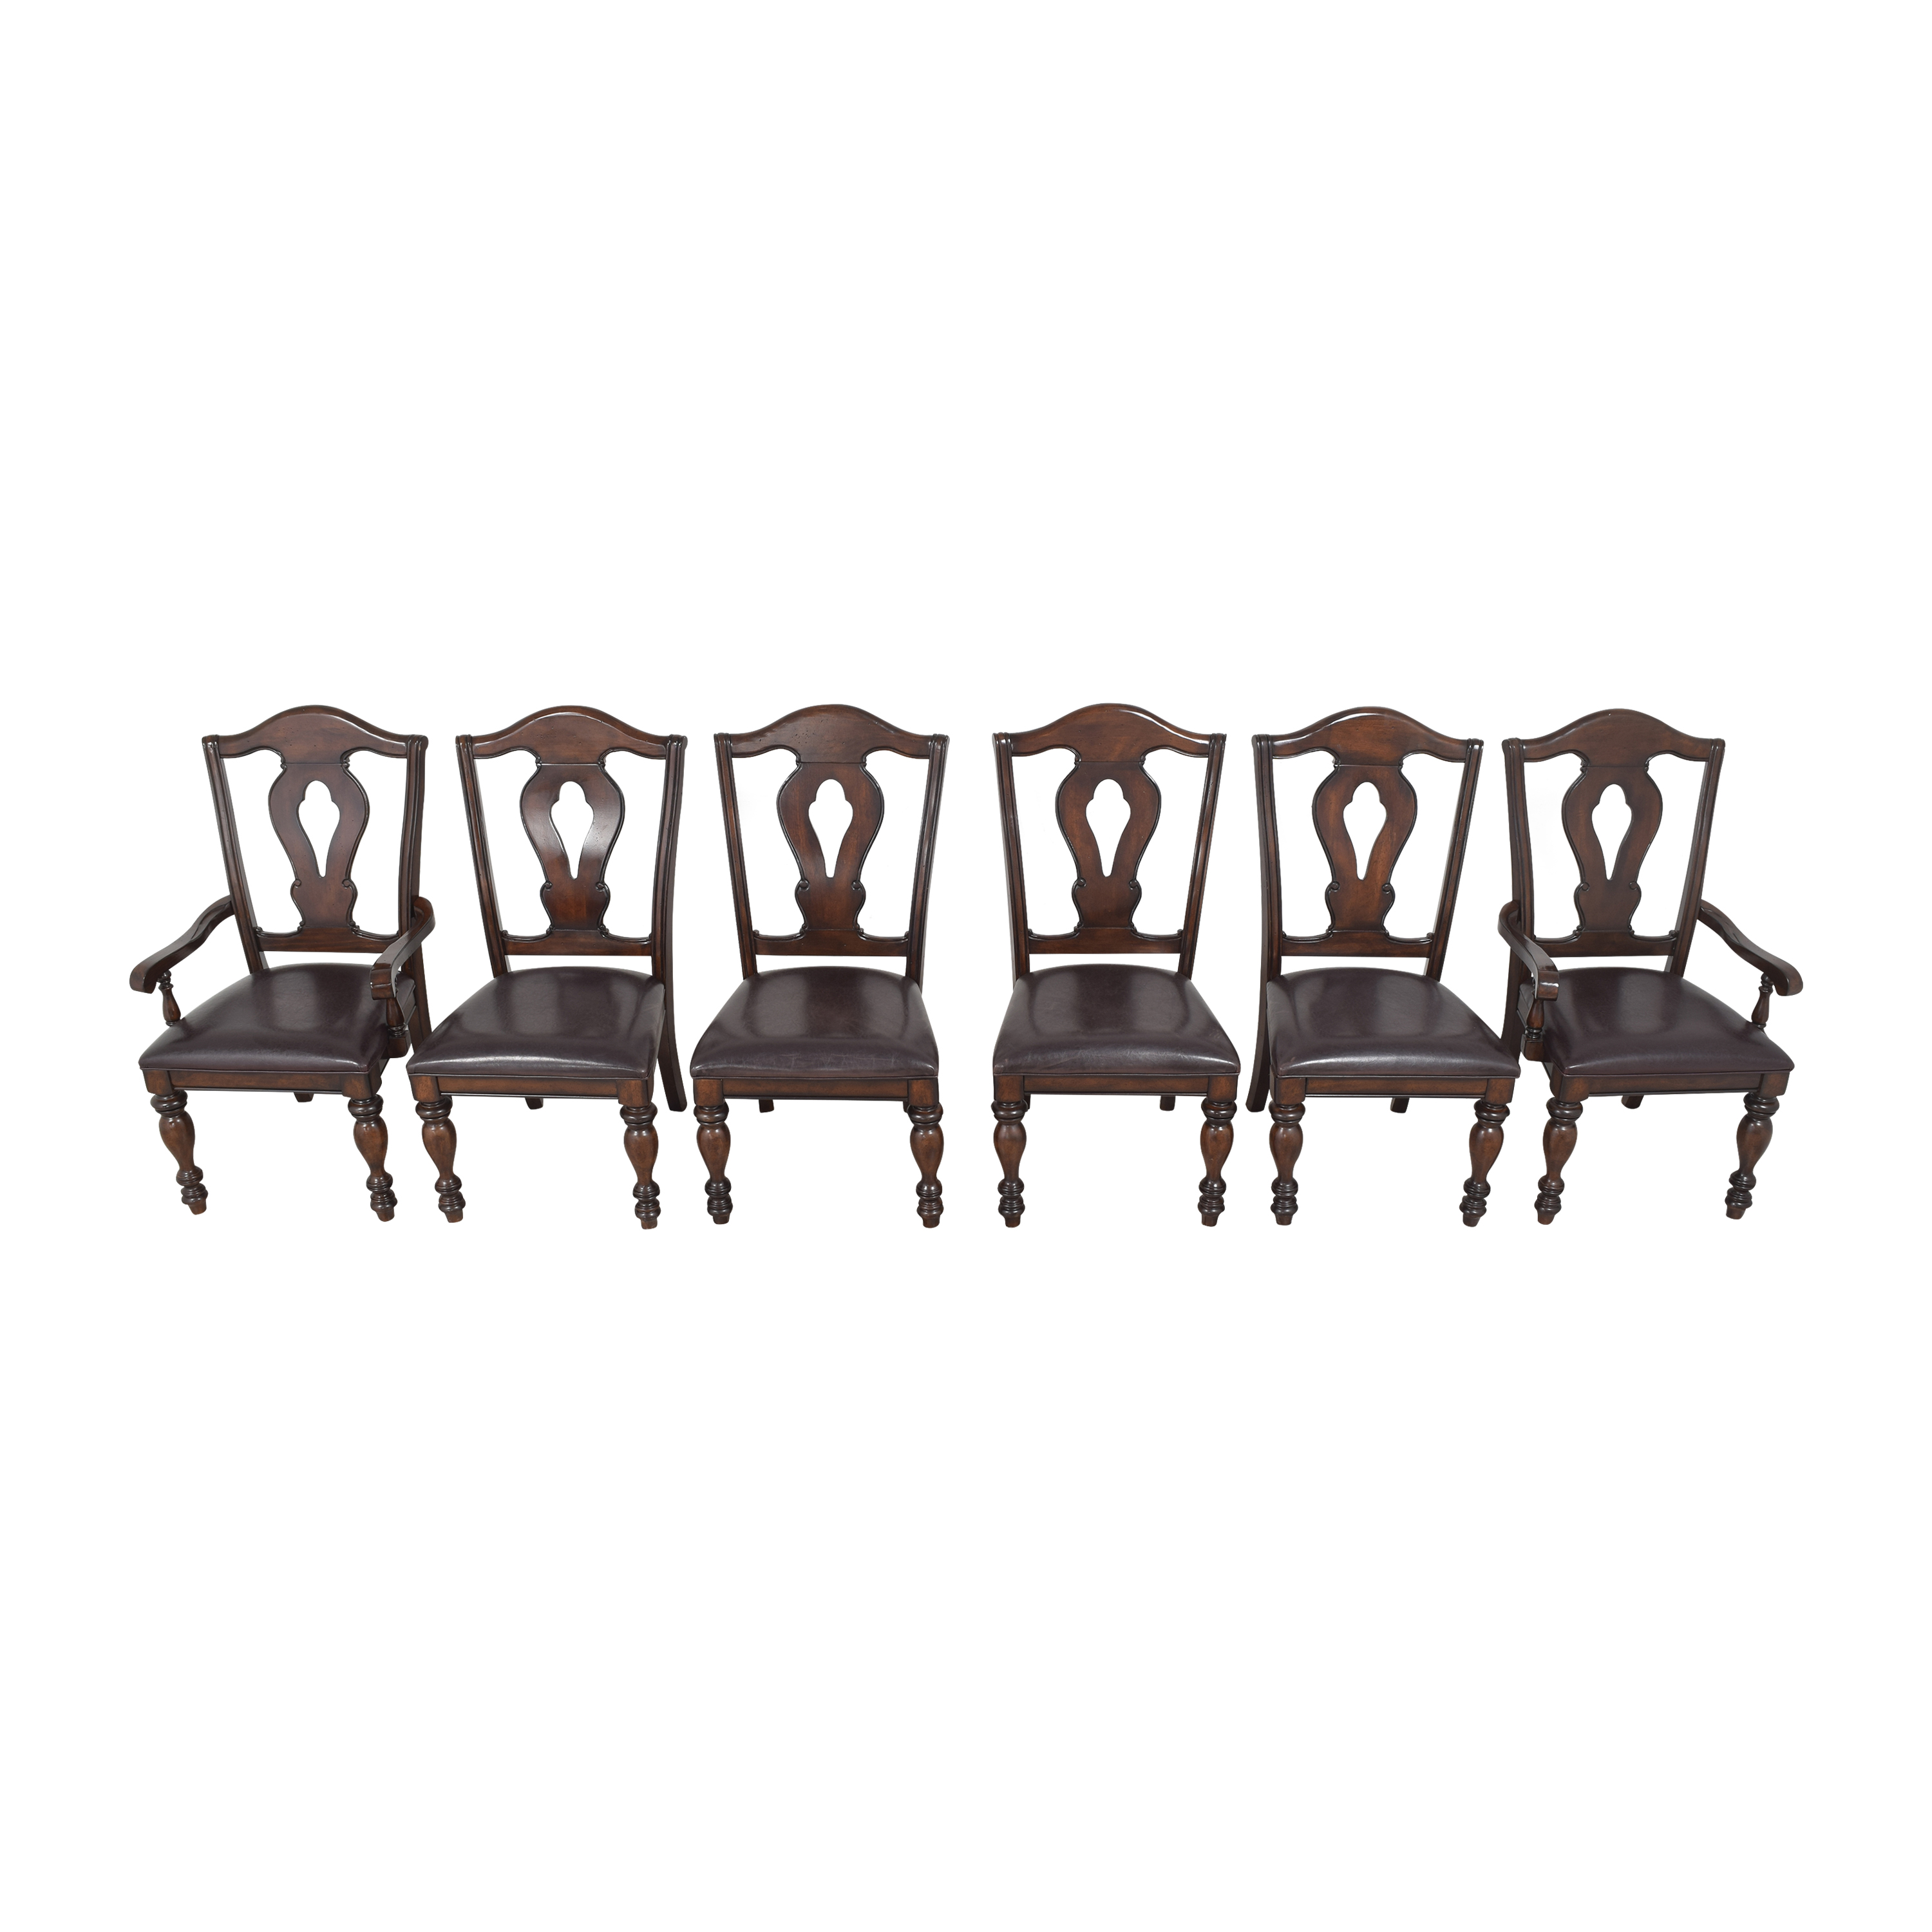 Legacy Classic Furniture Legacy Classic Furniture Dining Chairs coupon